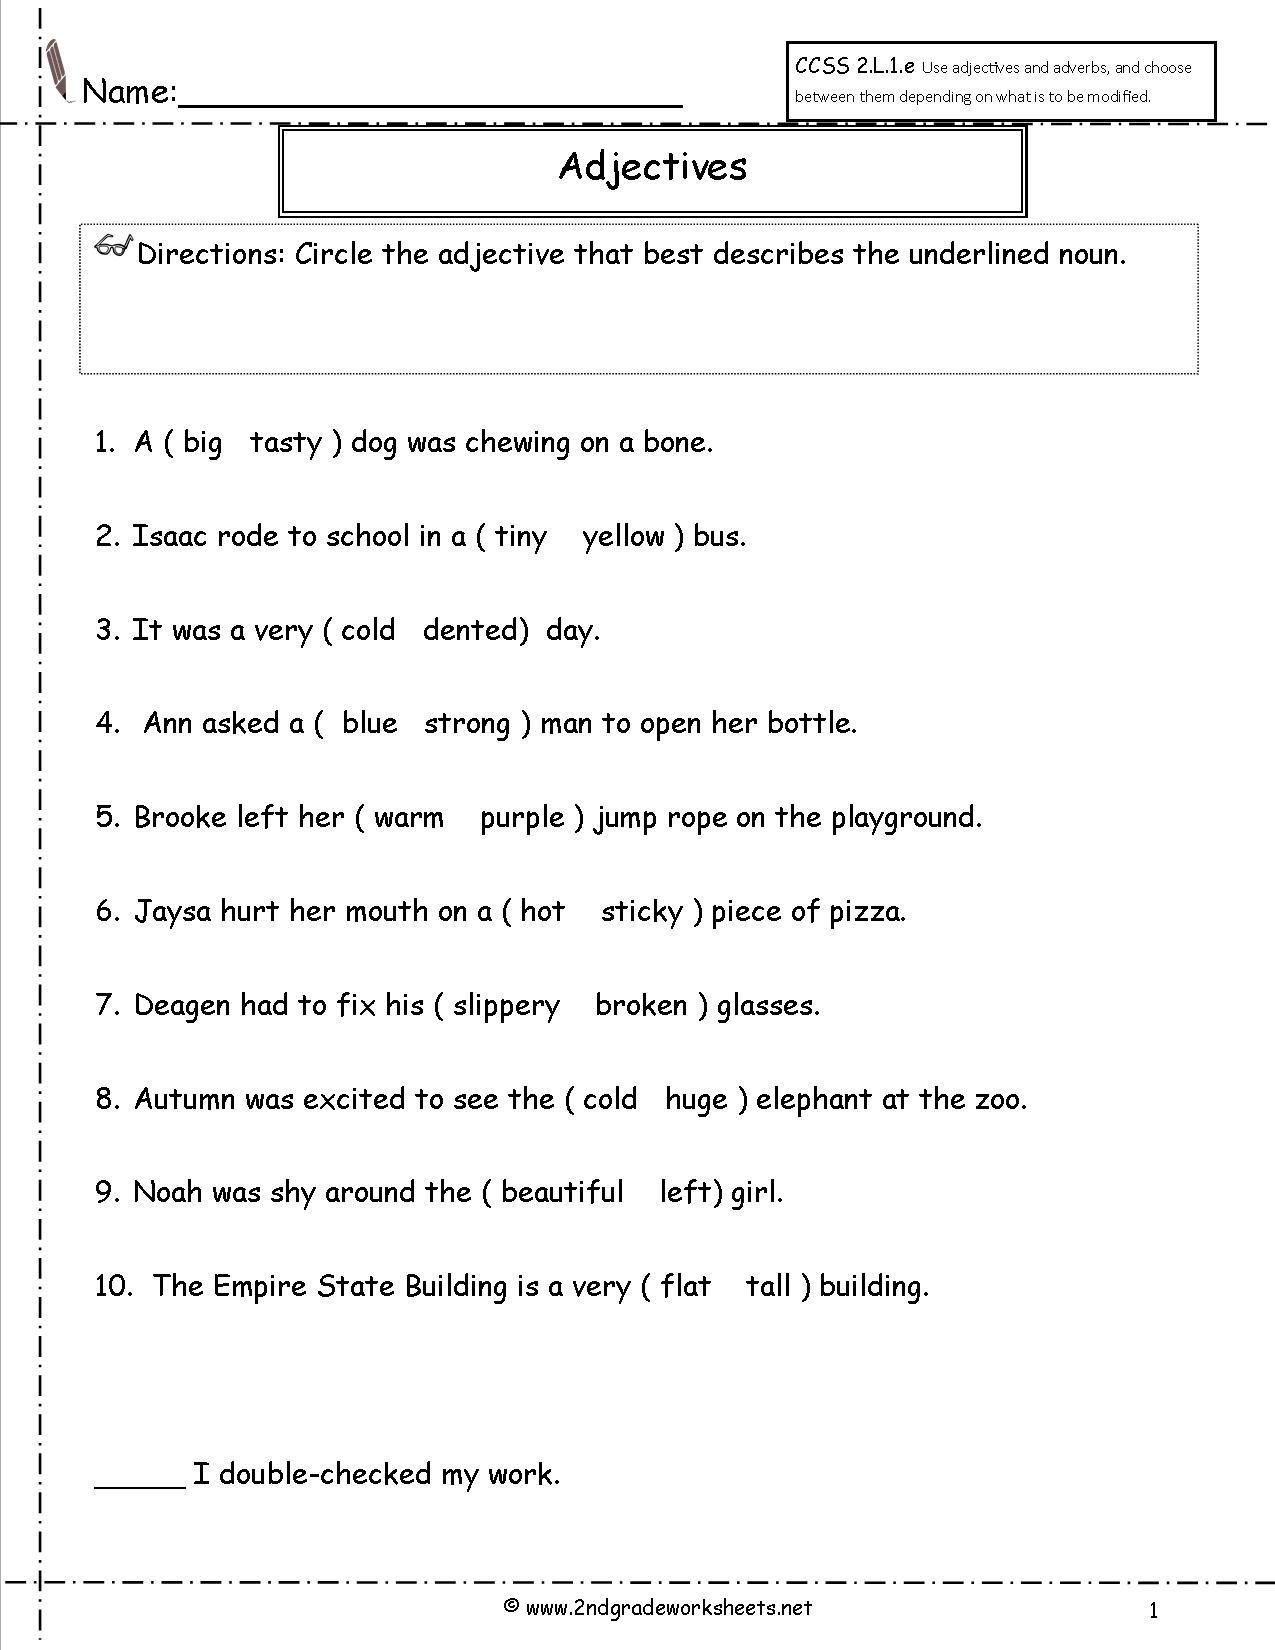 Adjectives Worksheets 3rd Grade Adjectives Worksheet